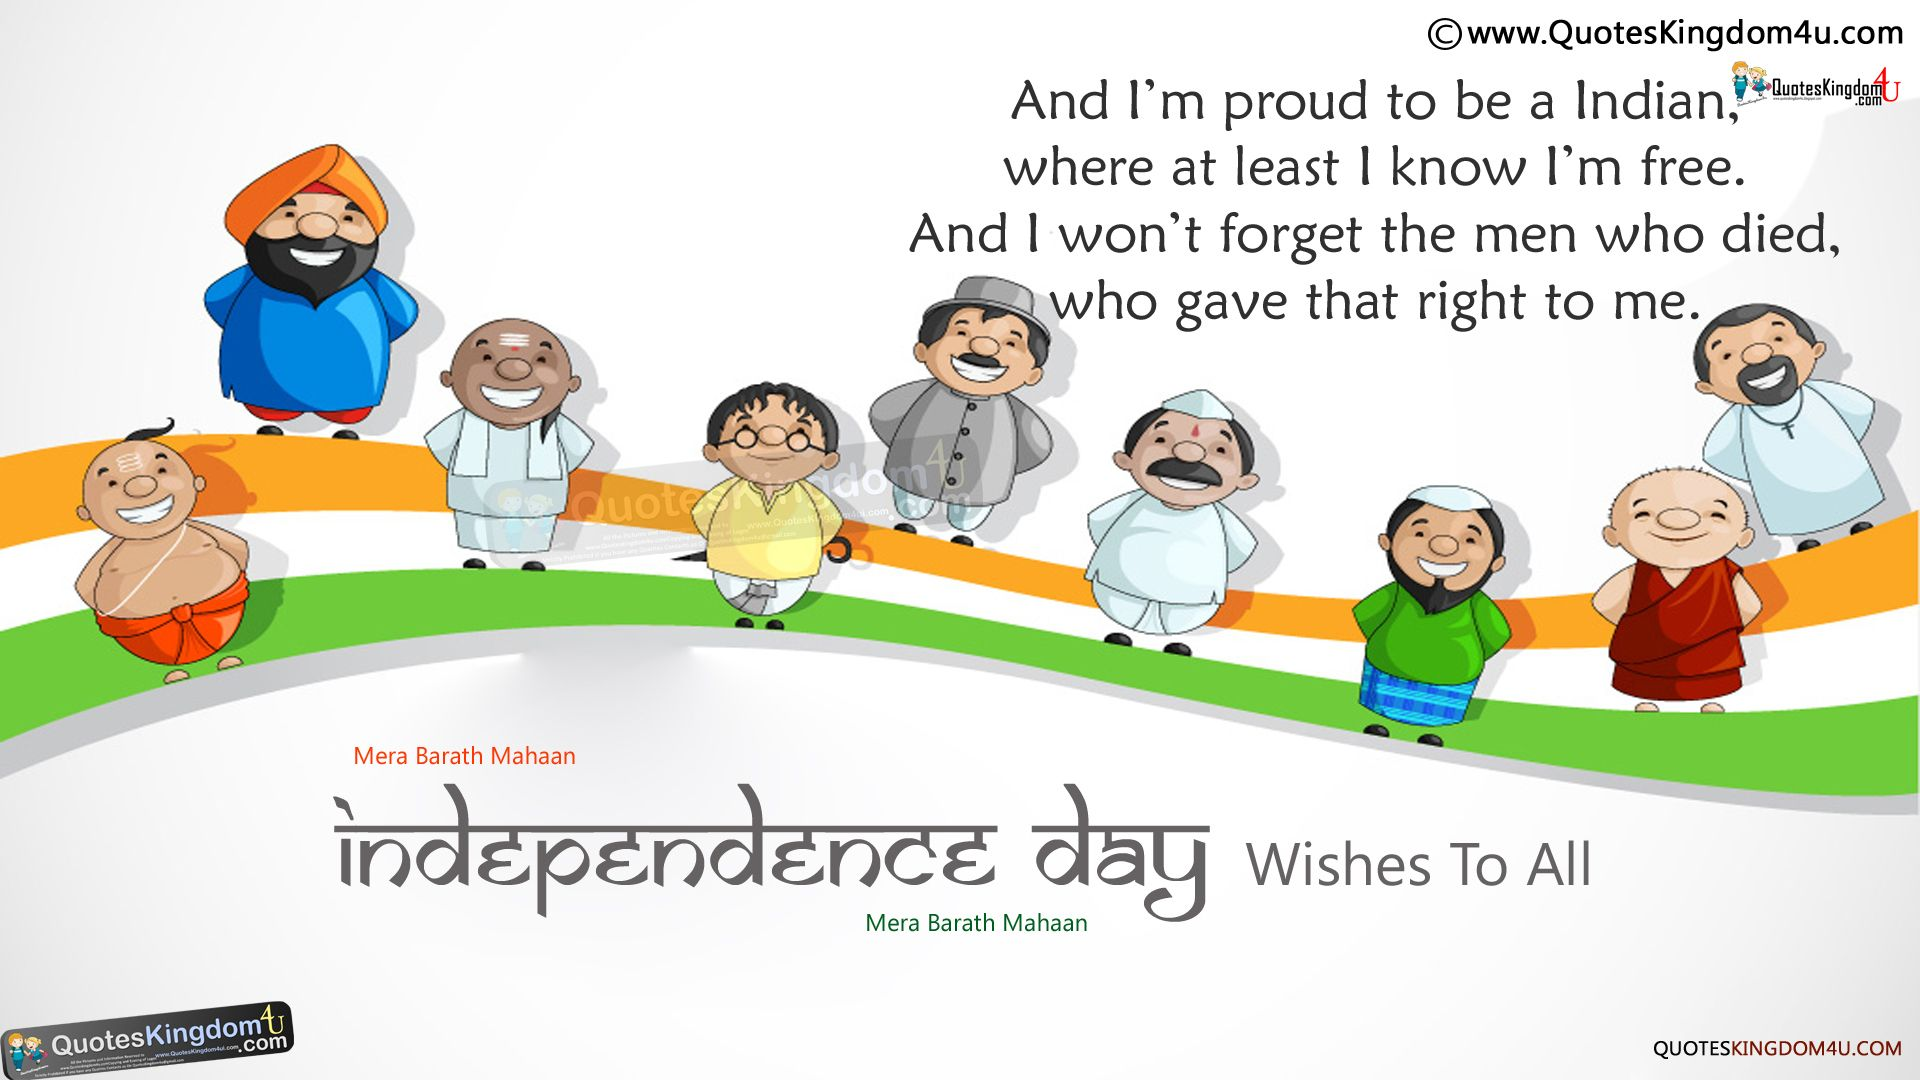 Best english indian independence day quots gallery online good best english indian independence day quots gallery online good independence day kristyandbryce Gallery